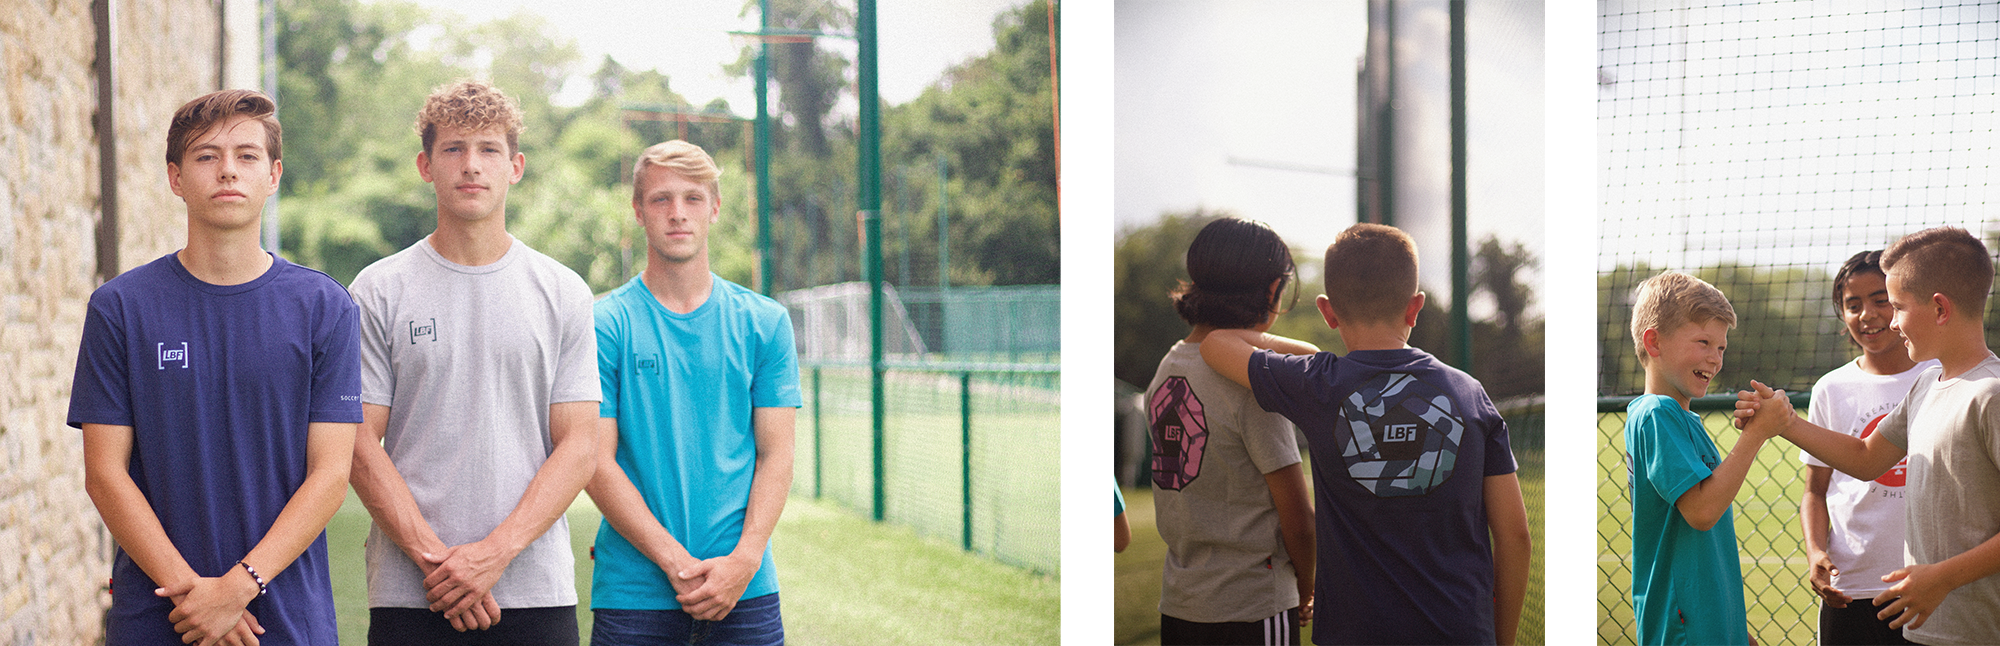 On the left, SKC U19 Academy players stare straight into the camera, on the right, SKC U13 Academy players interact by shaking hands and leaning on one another.